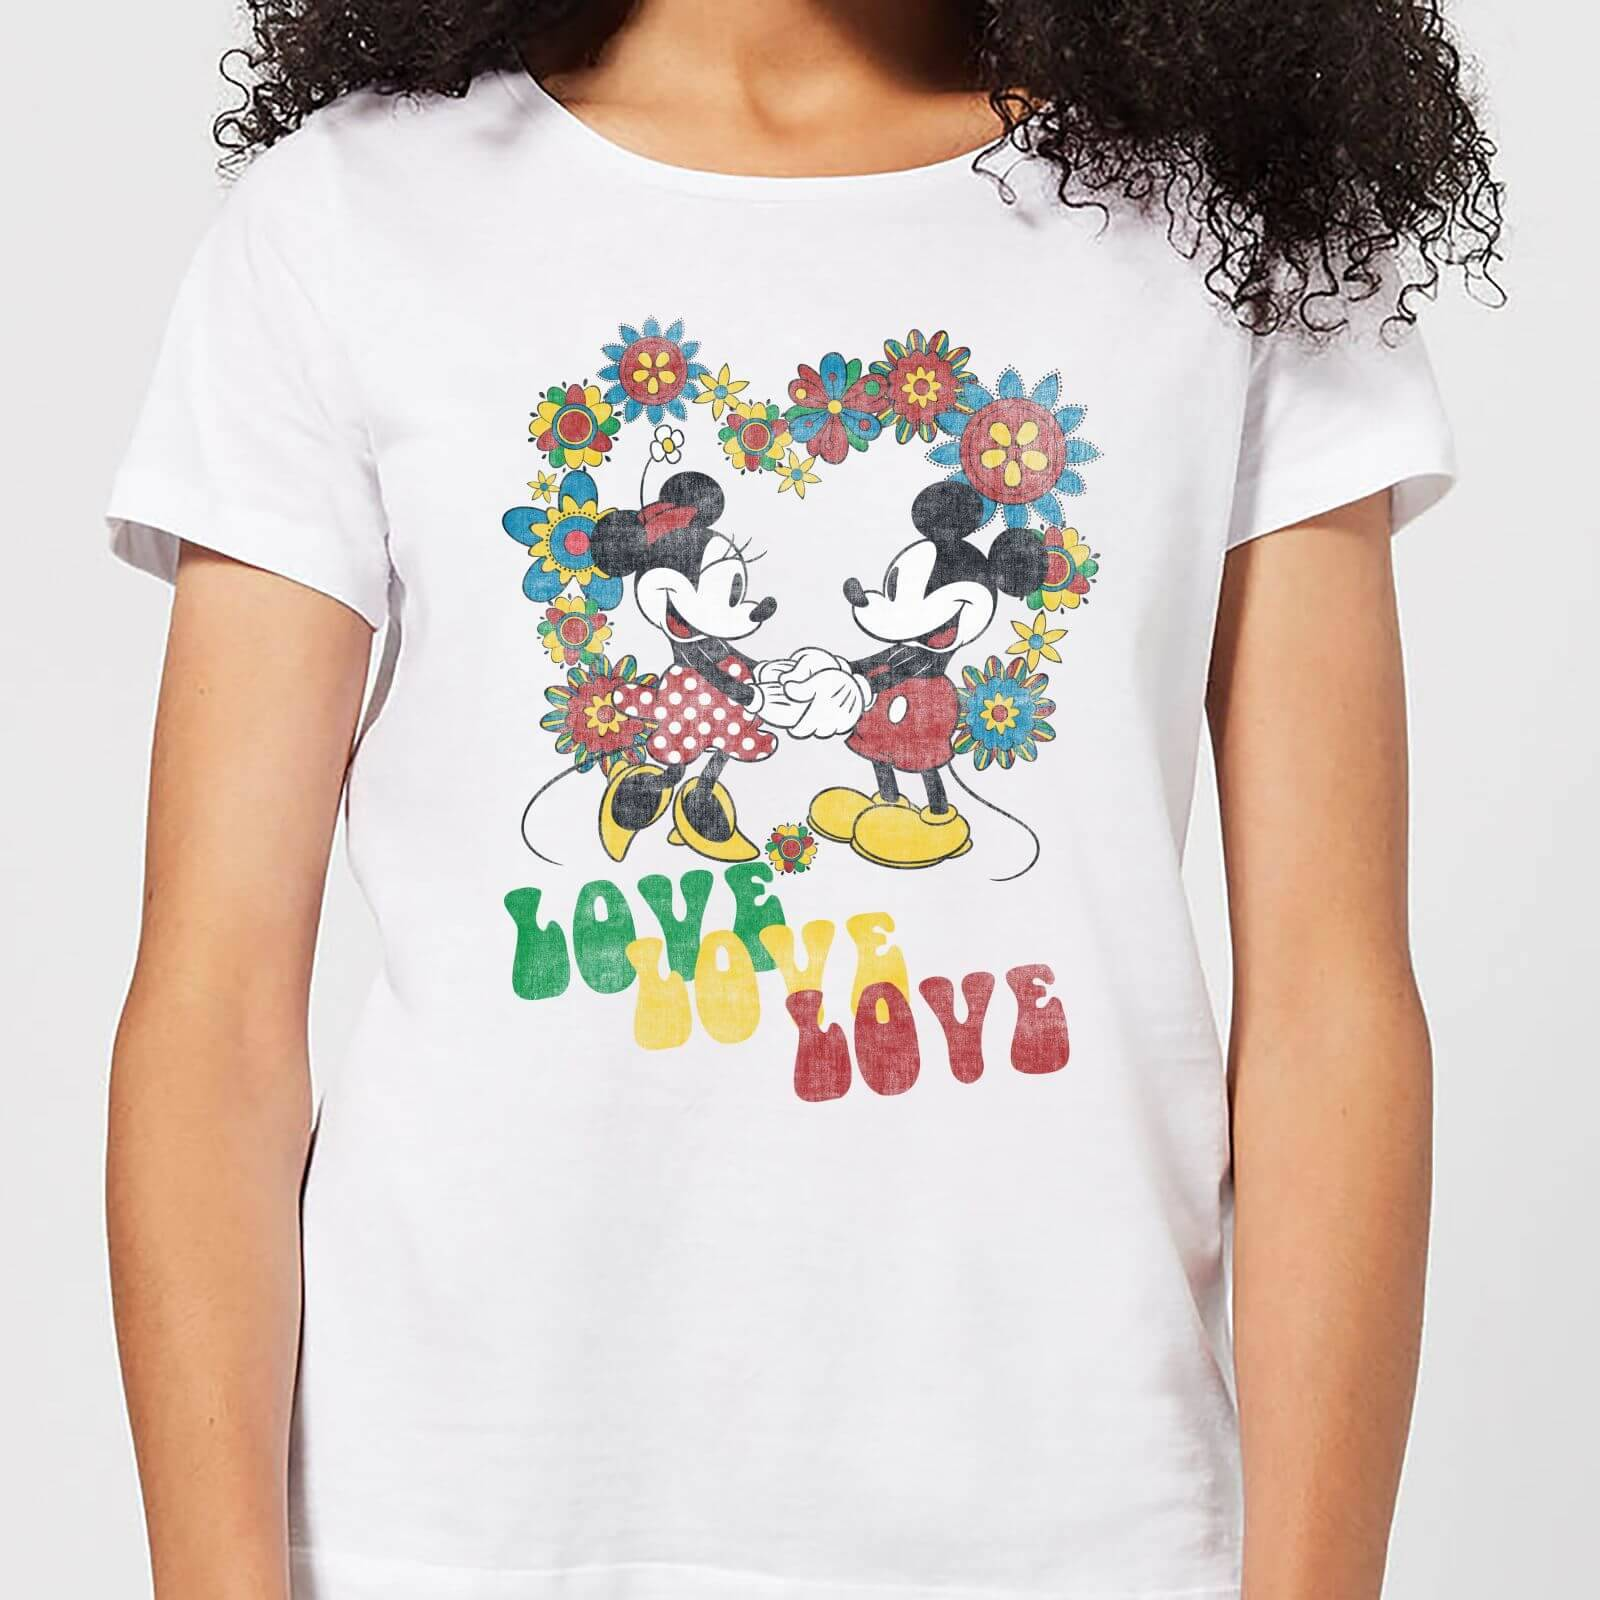 Disney Mickey Mouse Hippie Love Women's T-Shirt - White - M - White